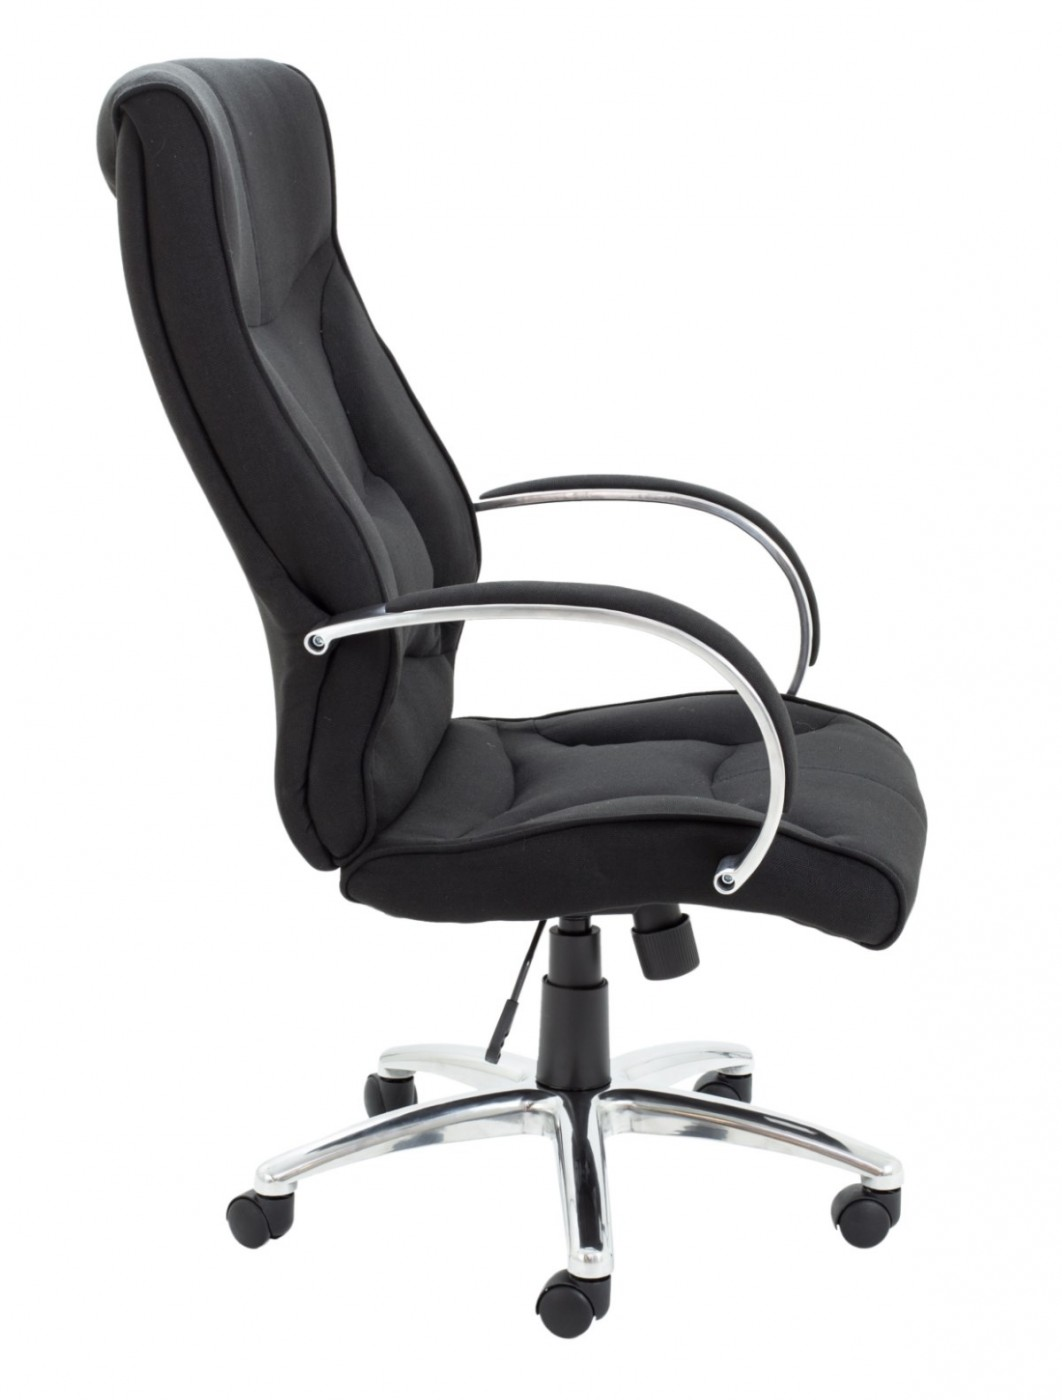 Boardroom Chairs Office Chairs Tc Whist Executive Fabric Office Chair Ch3206